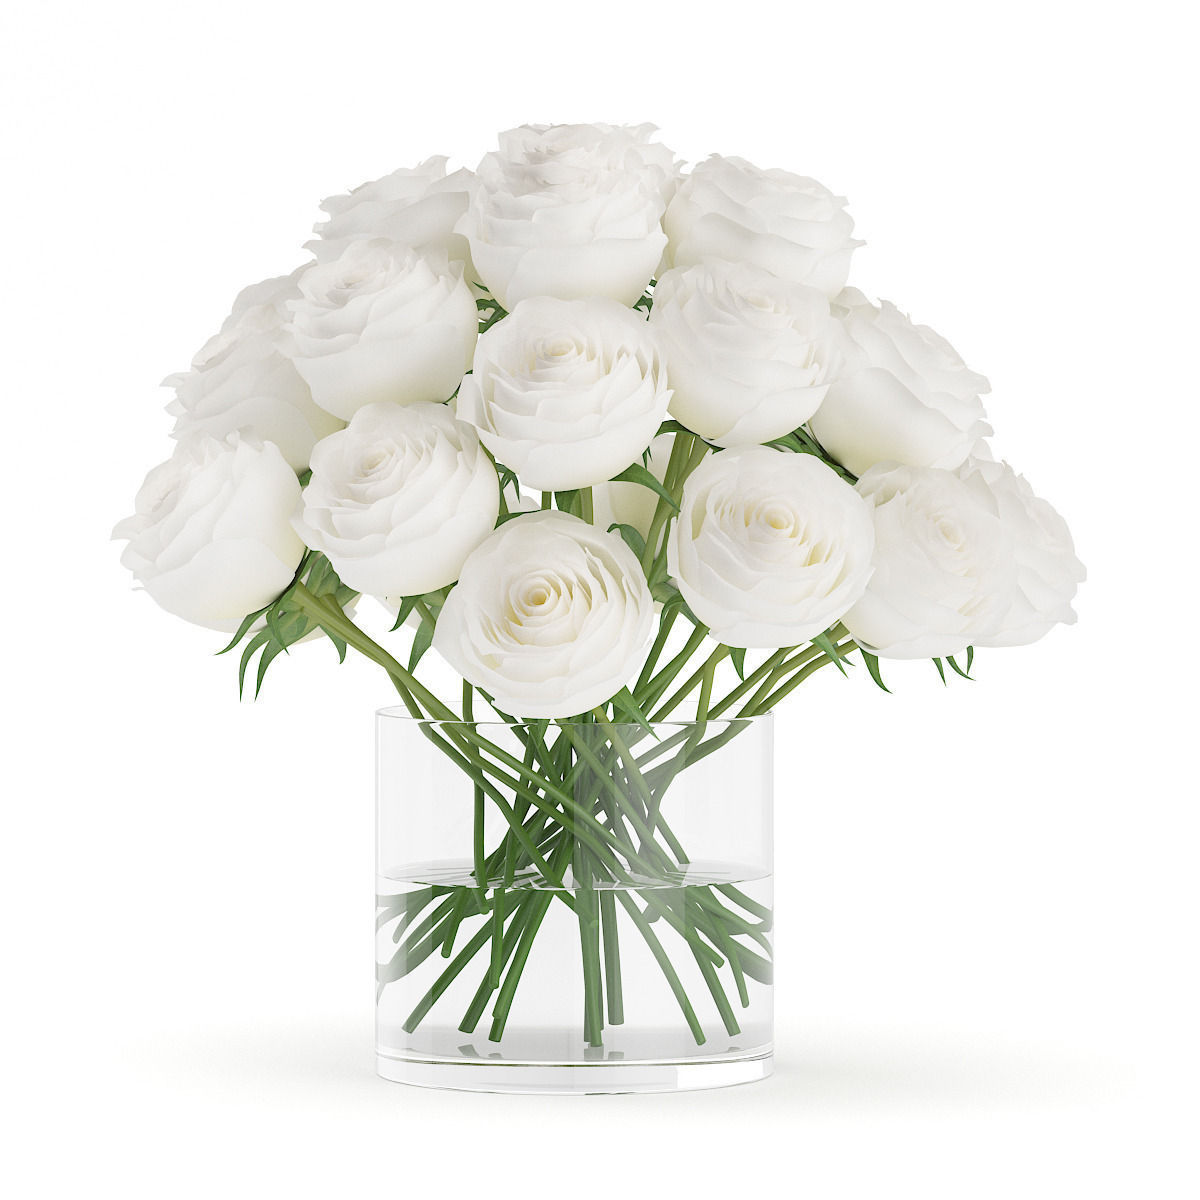 3d Model White Roses In Glass Vase Cgtrader